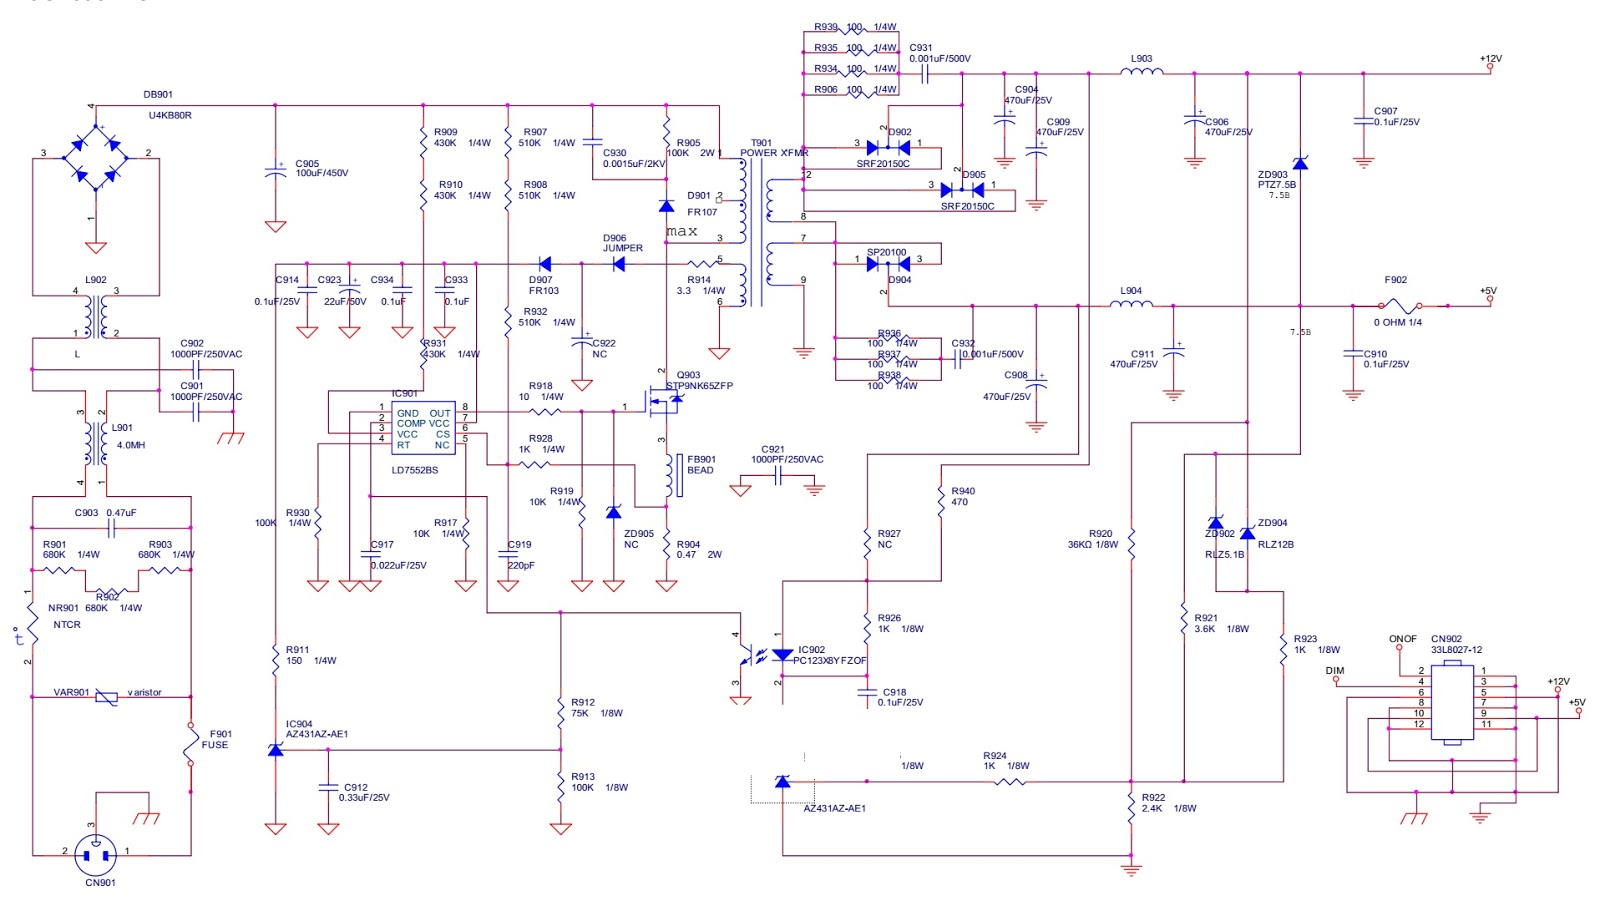 Emachine E19T6W LCD color monitor SMPS circuit diagram 715G1695 1GW ...